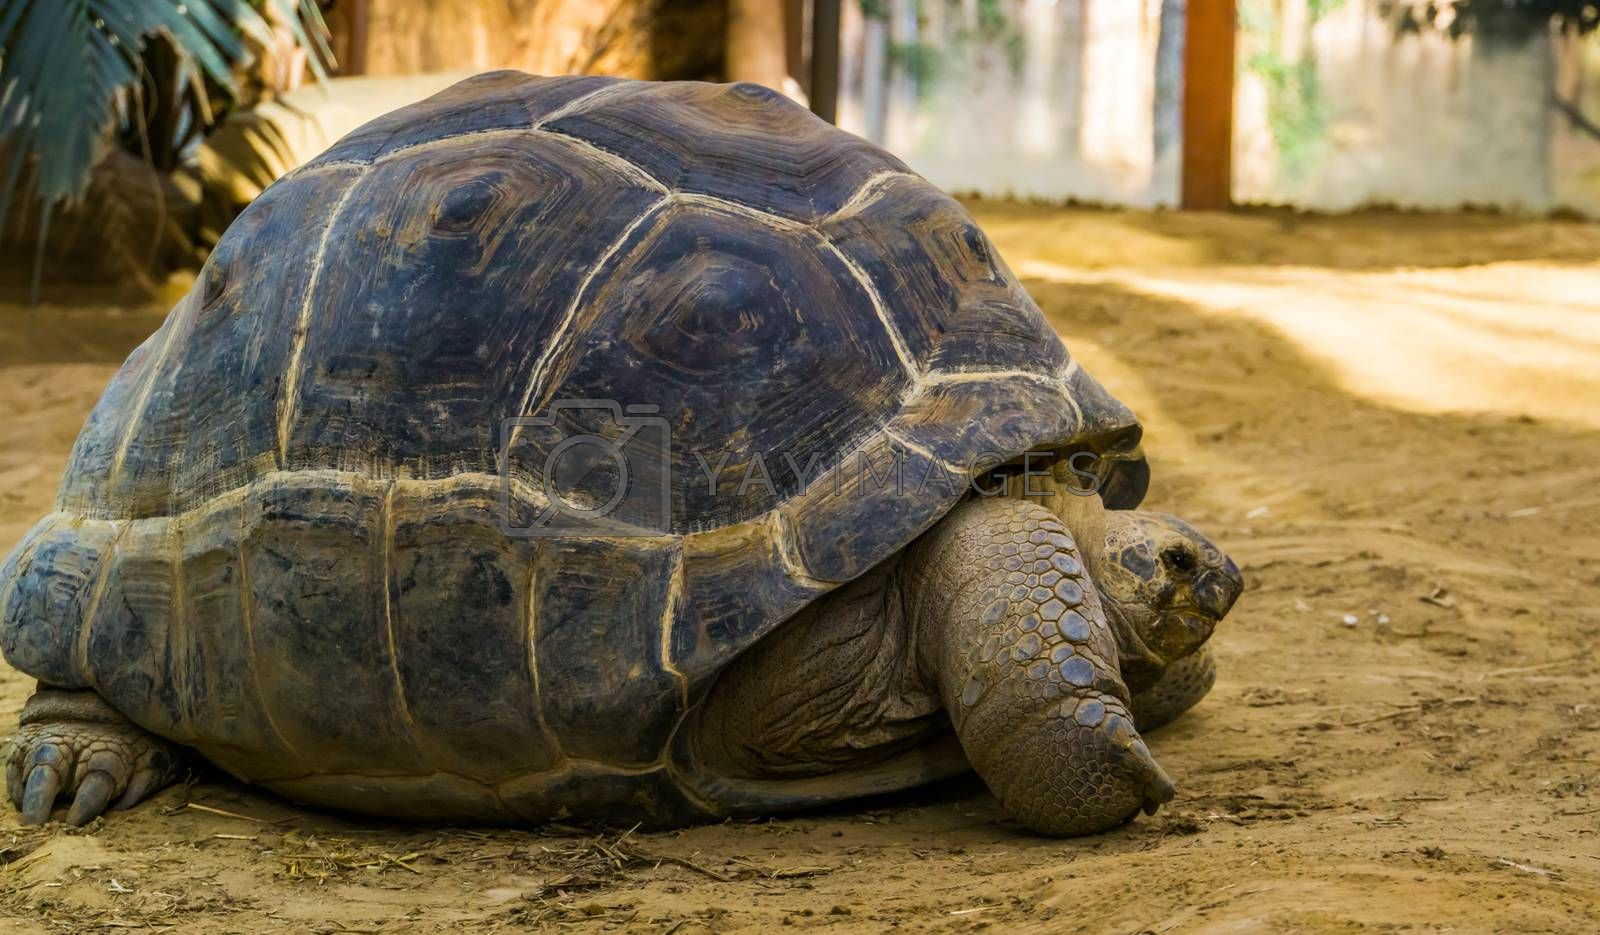 closeup portrait of a aldabra giant tortoise, worlds largest turtle specie, tropical and vulnerable reptile from seychelles and madagascar by charlotte Bleijenberg